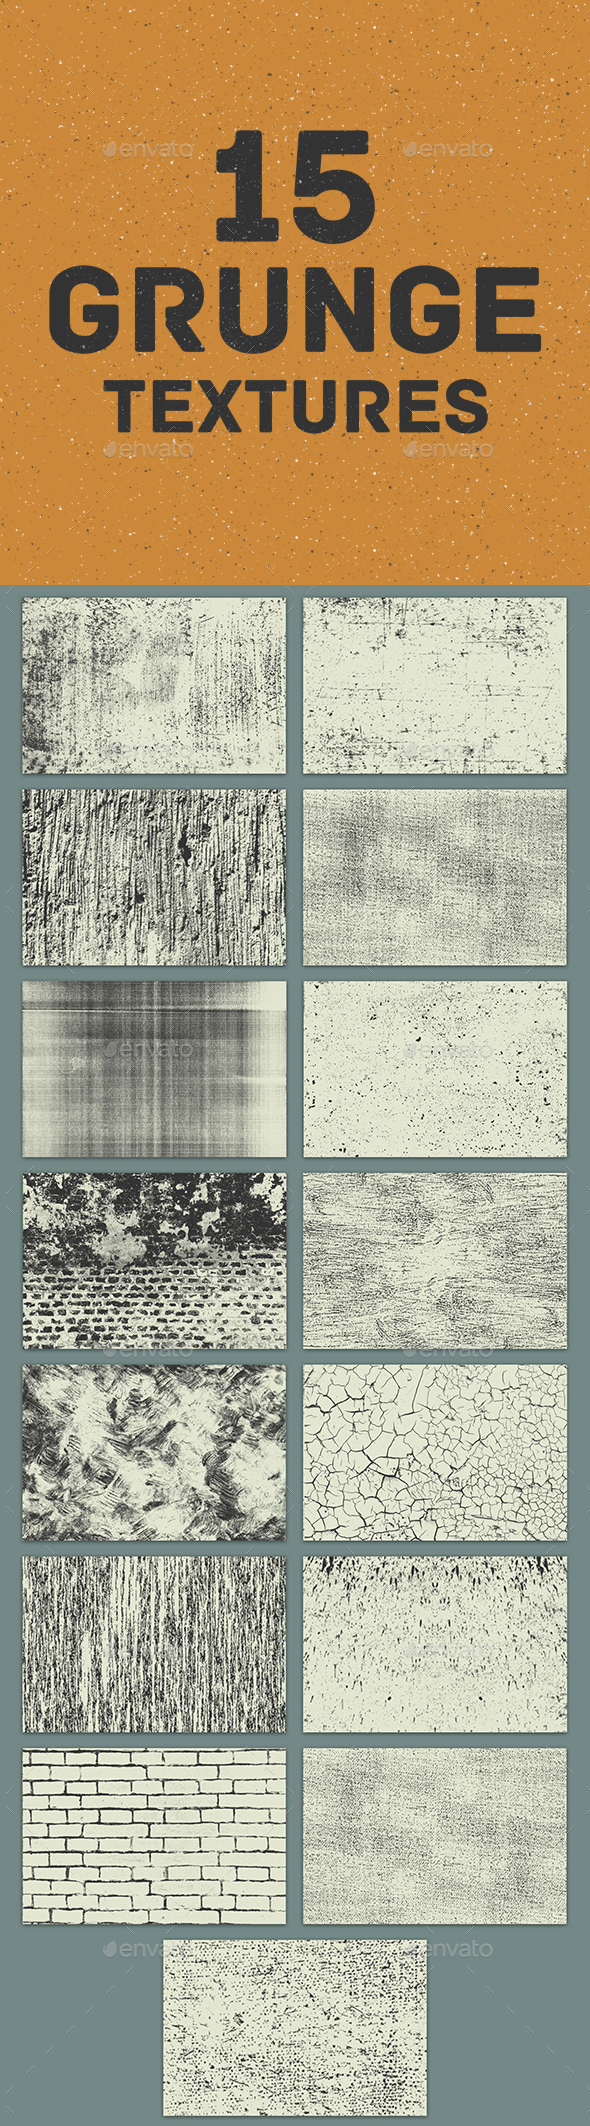 15 Grunge Textures - Miscellaneous Textures